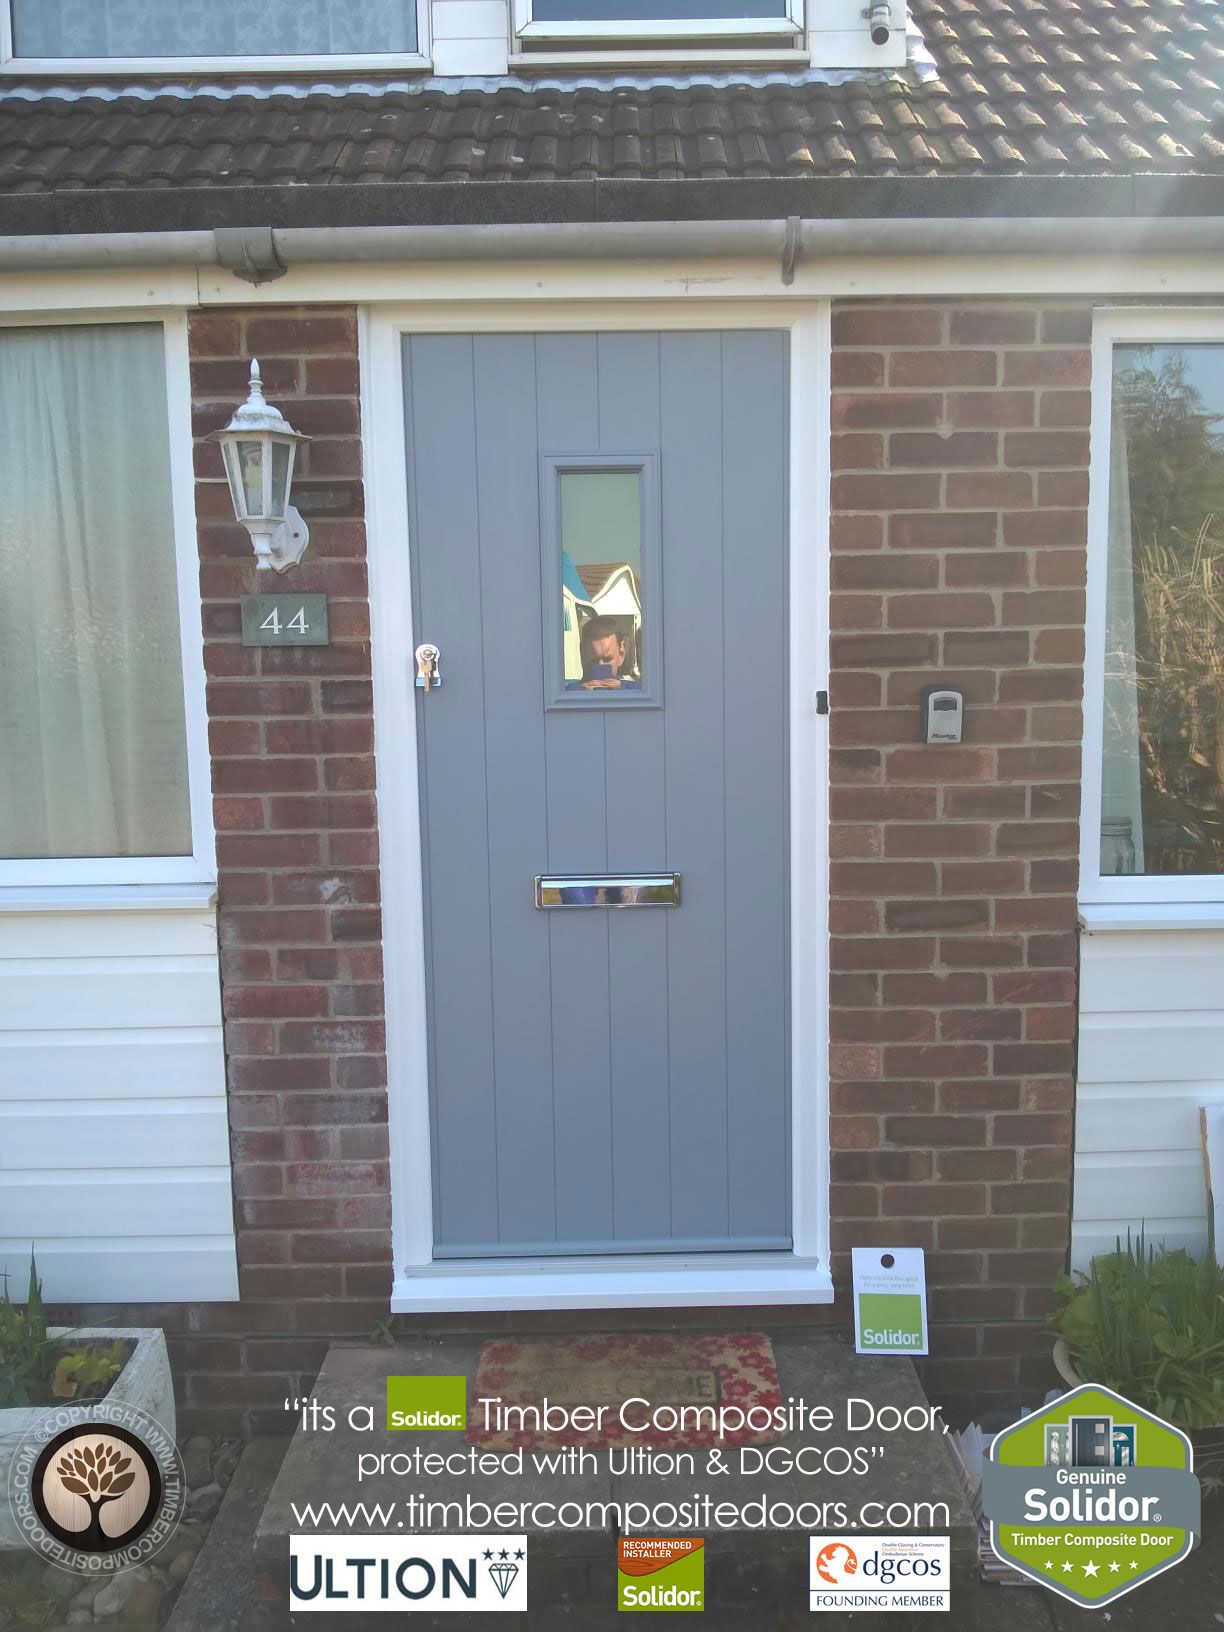 French grey solidor timber composite doors 12 months interest free french grey solidor timber composite doors 12 months interest free credit by rubansaba